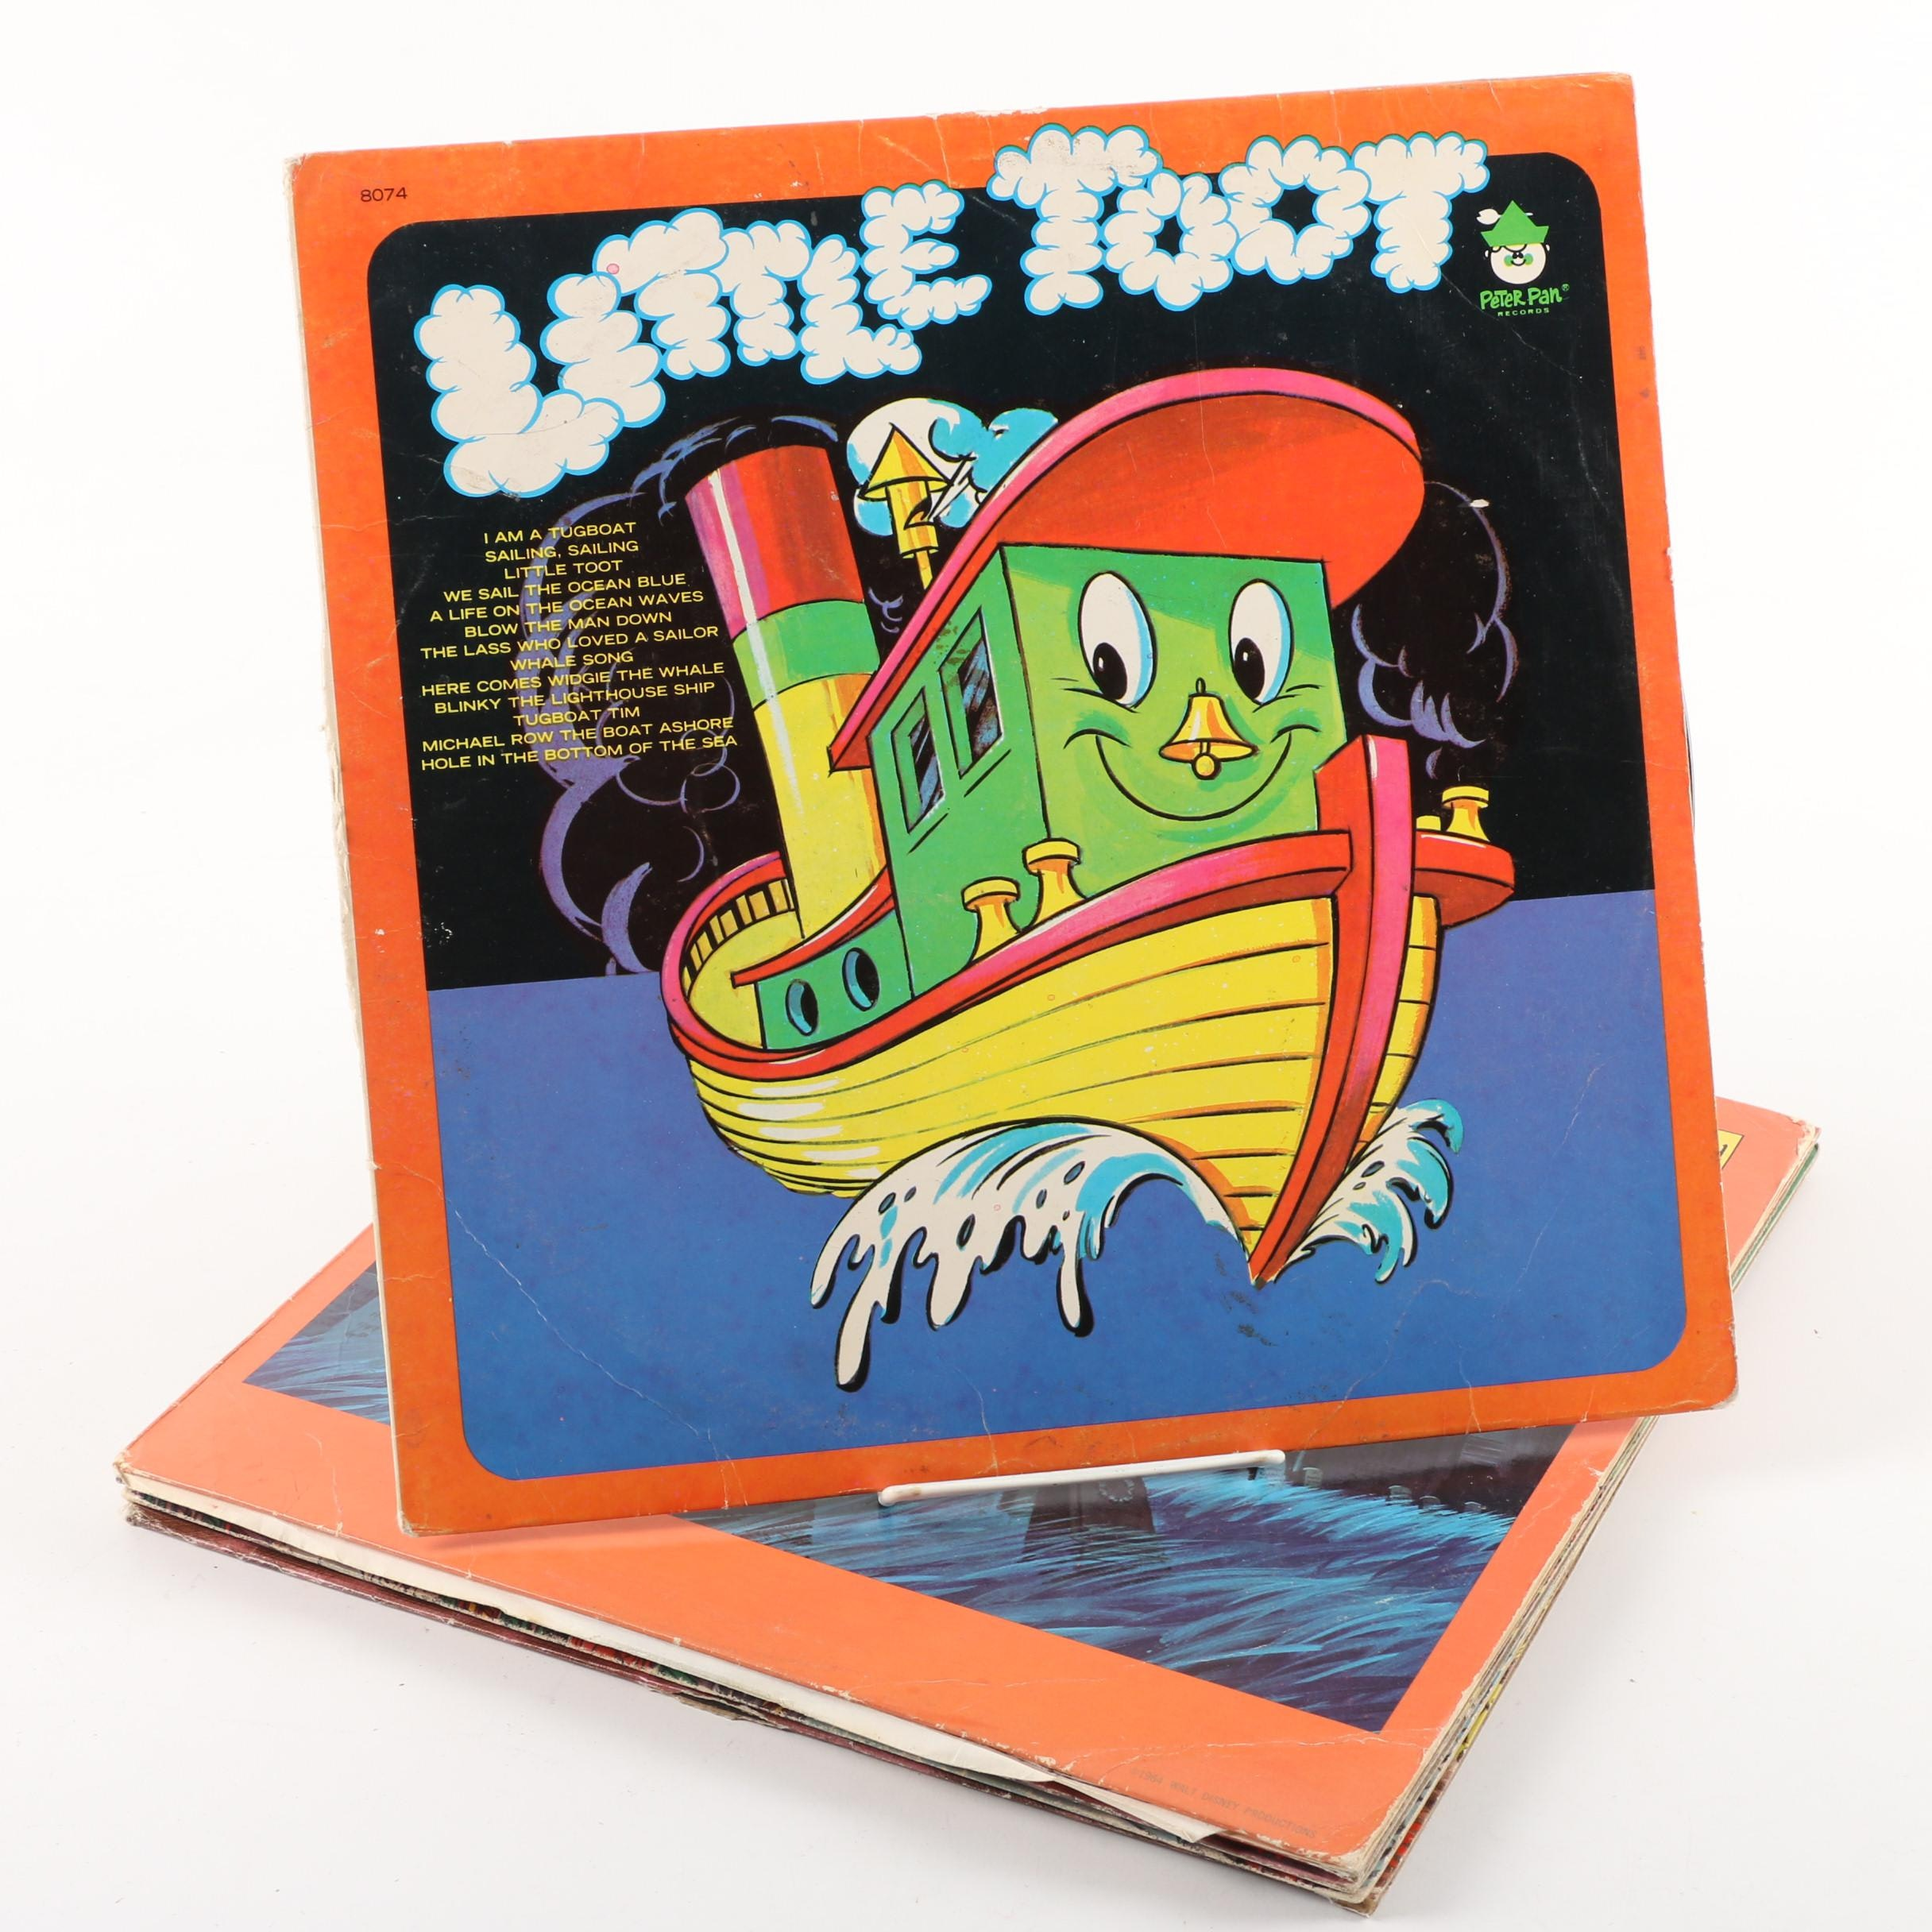 Little Toot, Monster Mash and Other Children's Records